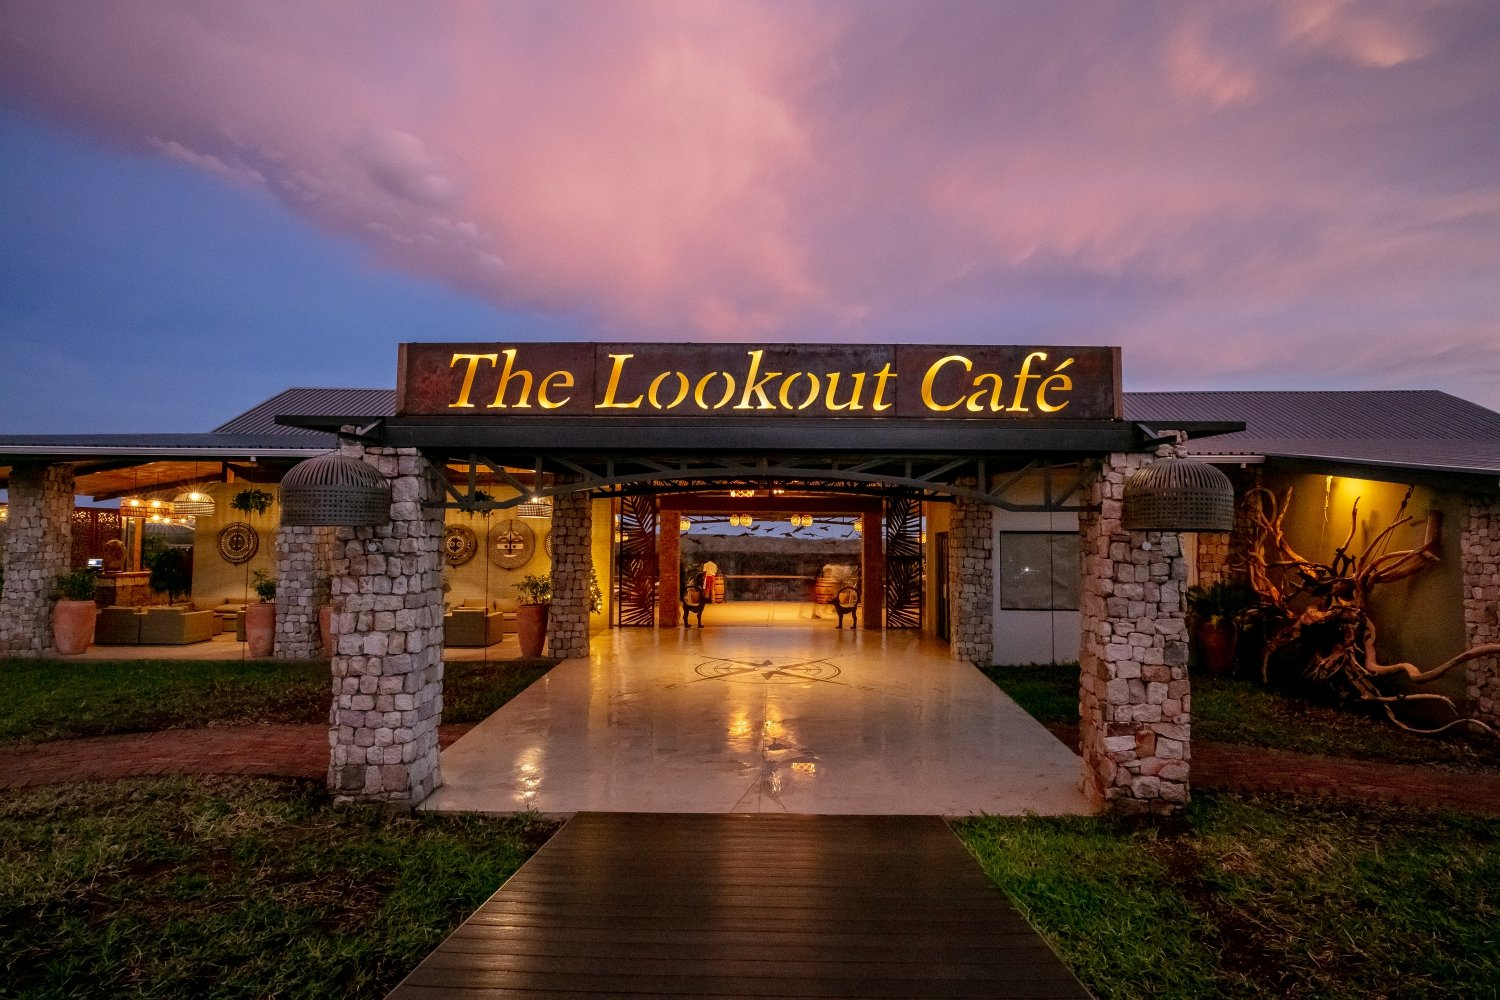 The Lookout Cafe